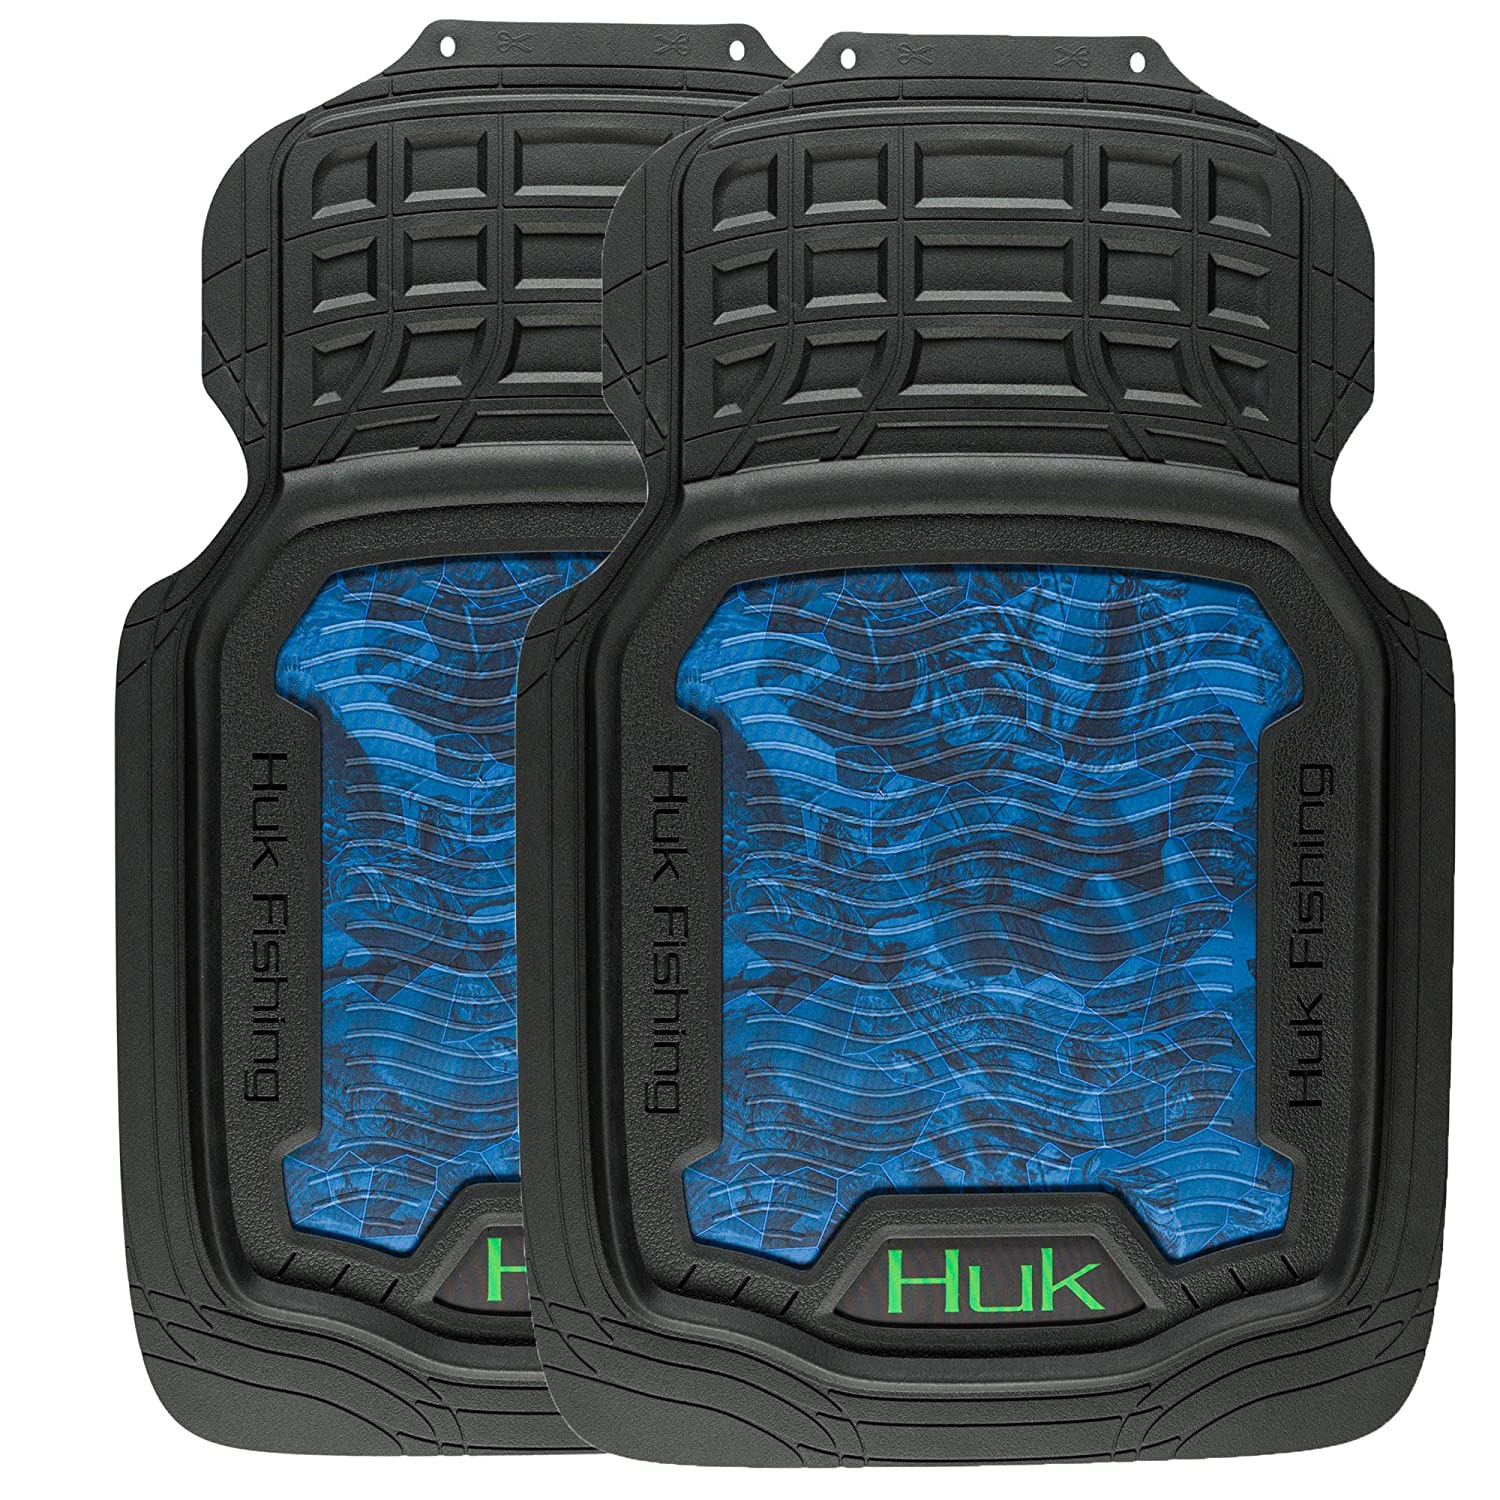 Huk Fishing Car and Truck Floor Mats, Premium Protection Against Water and Dirt, Set of 2